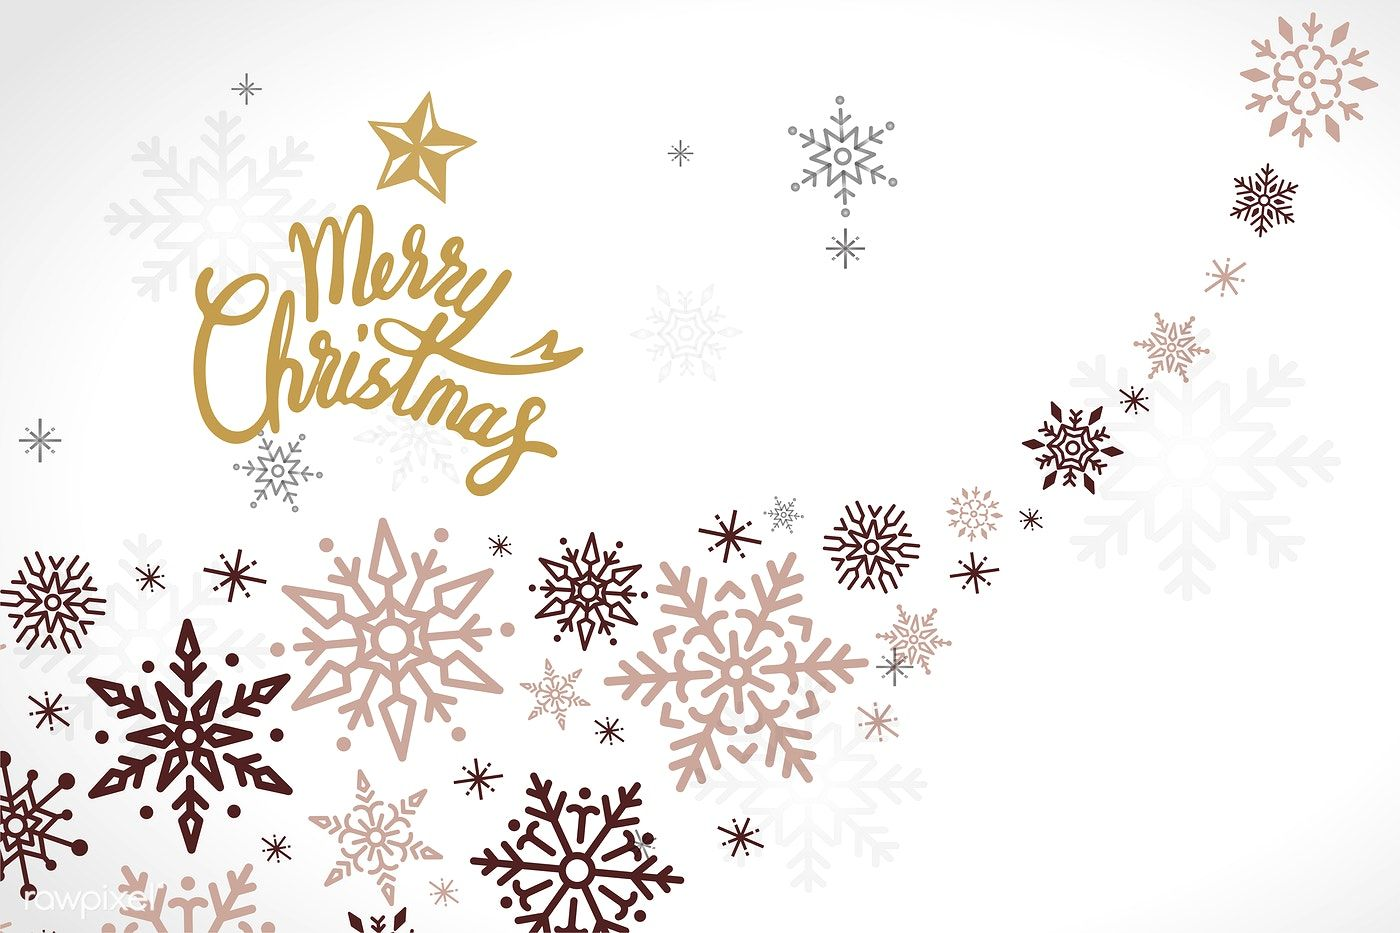 Merry Christmas Winter Holiday Background Vector Free Image By Rawpixel Com Merry Christmas Background Holiday Design Holiday Background